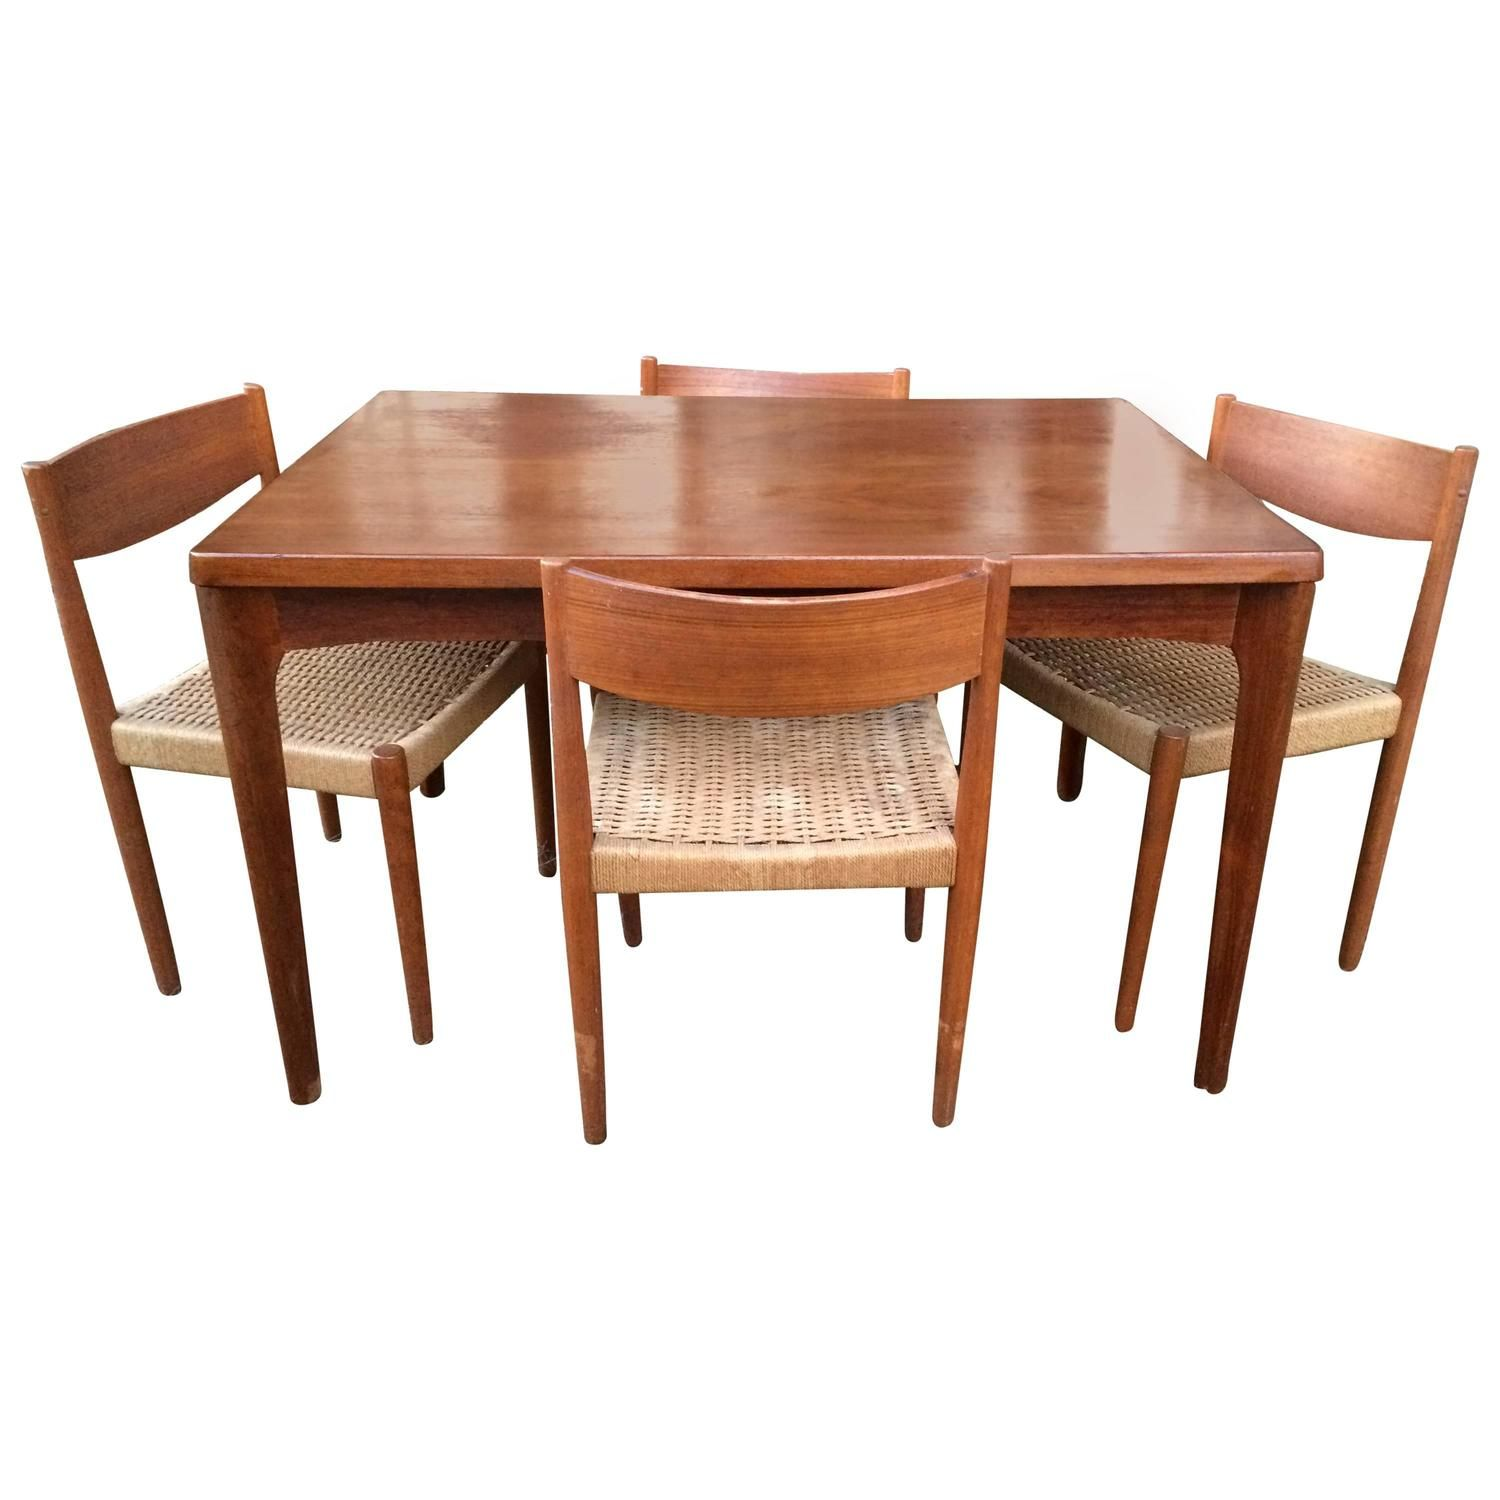 Danish Modern Extendable Teak Dining Table With Woven Chairs Unique Scandinavian Teak Dining Room Furniture Inspiration Design